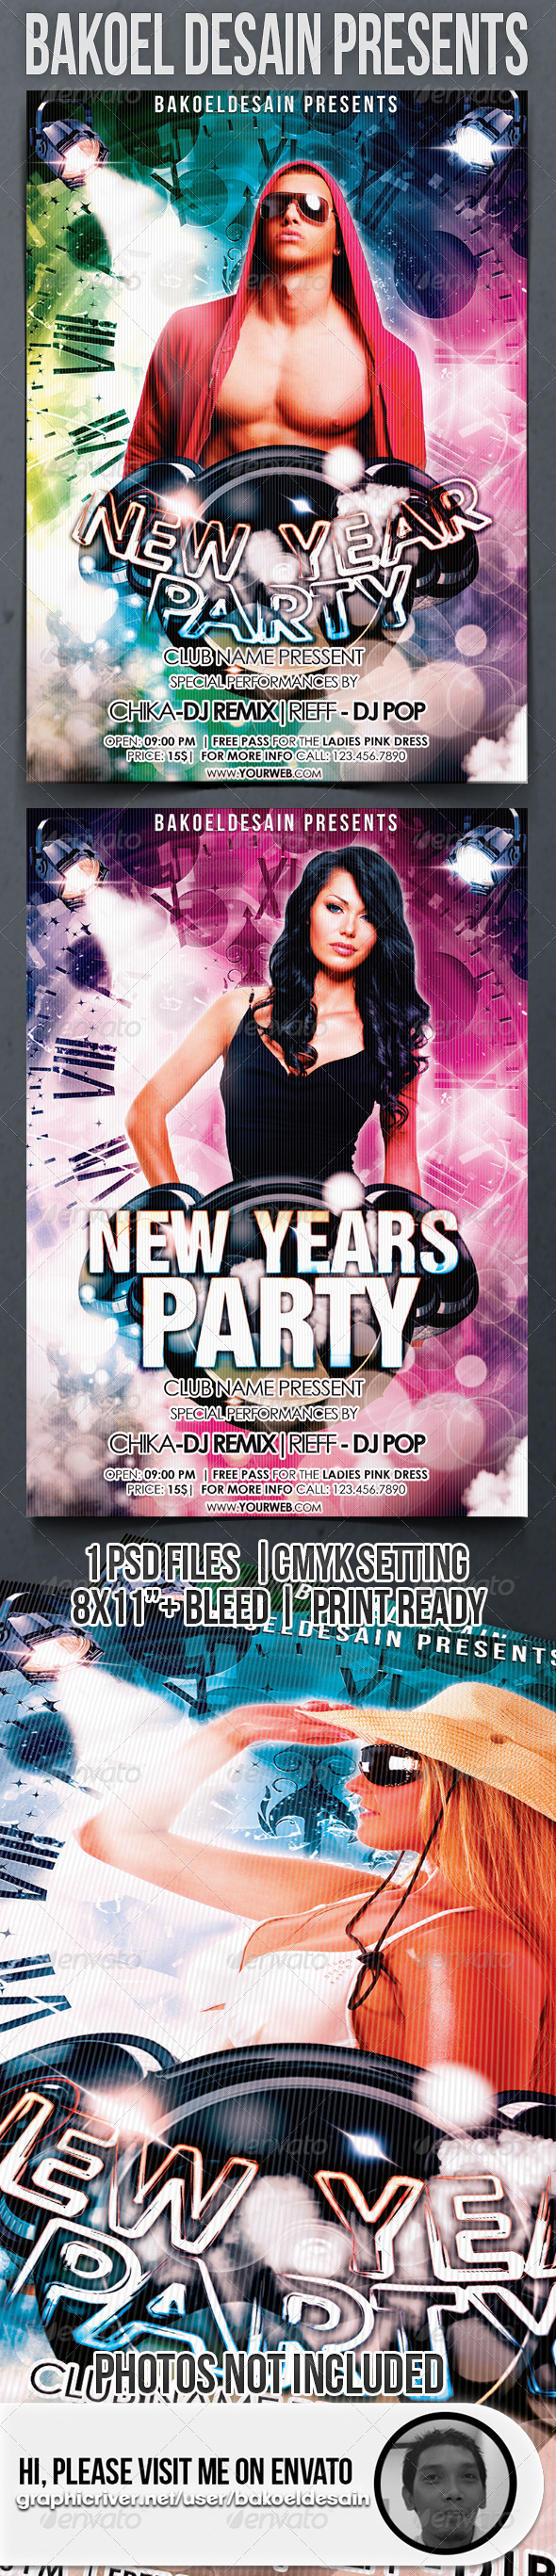 New Years Party Flyer - Clubs &amp; Parties Events